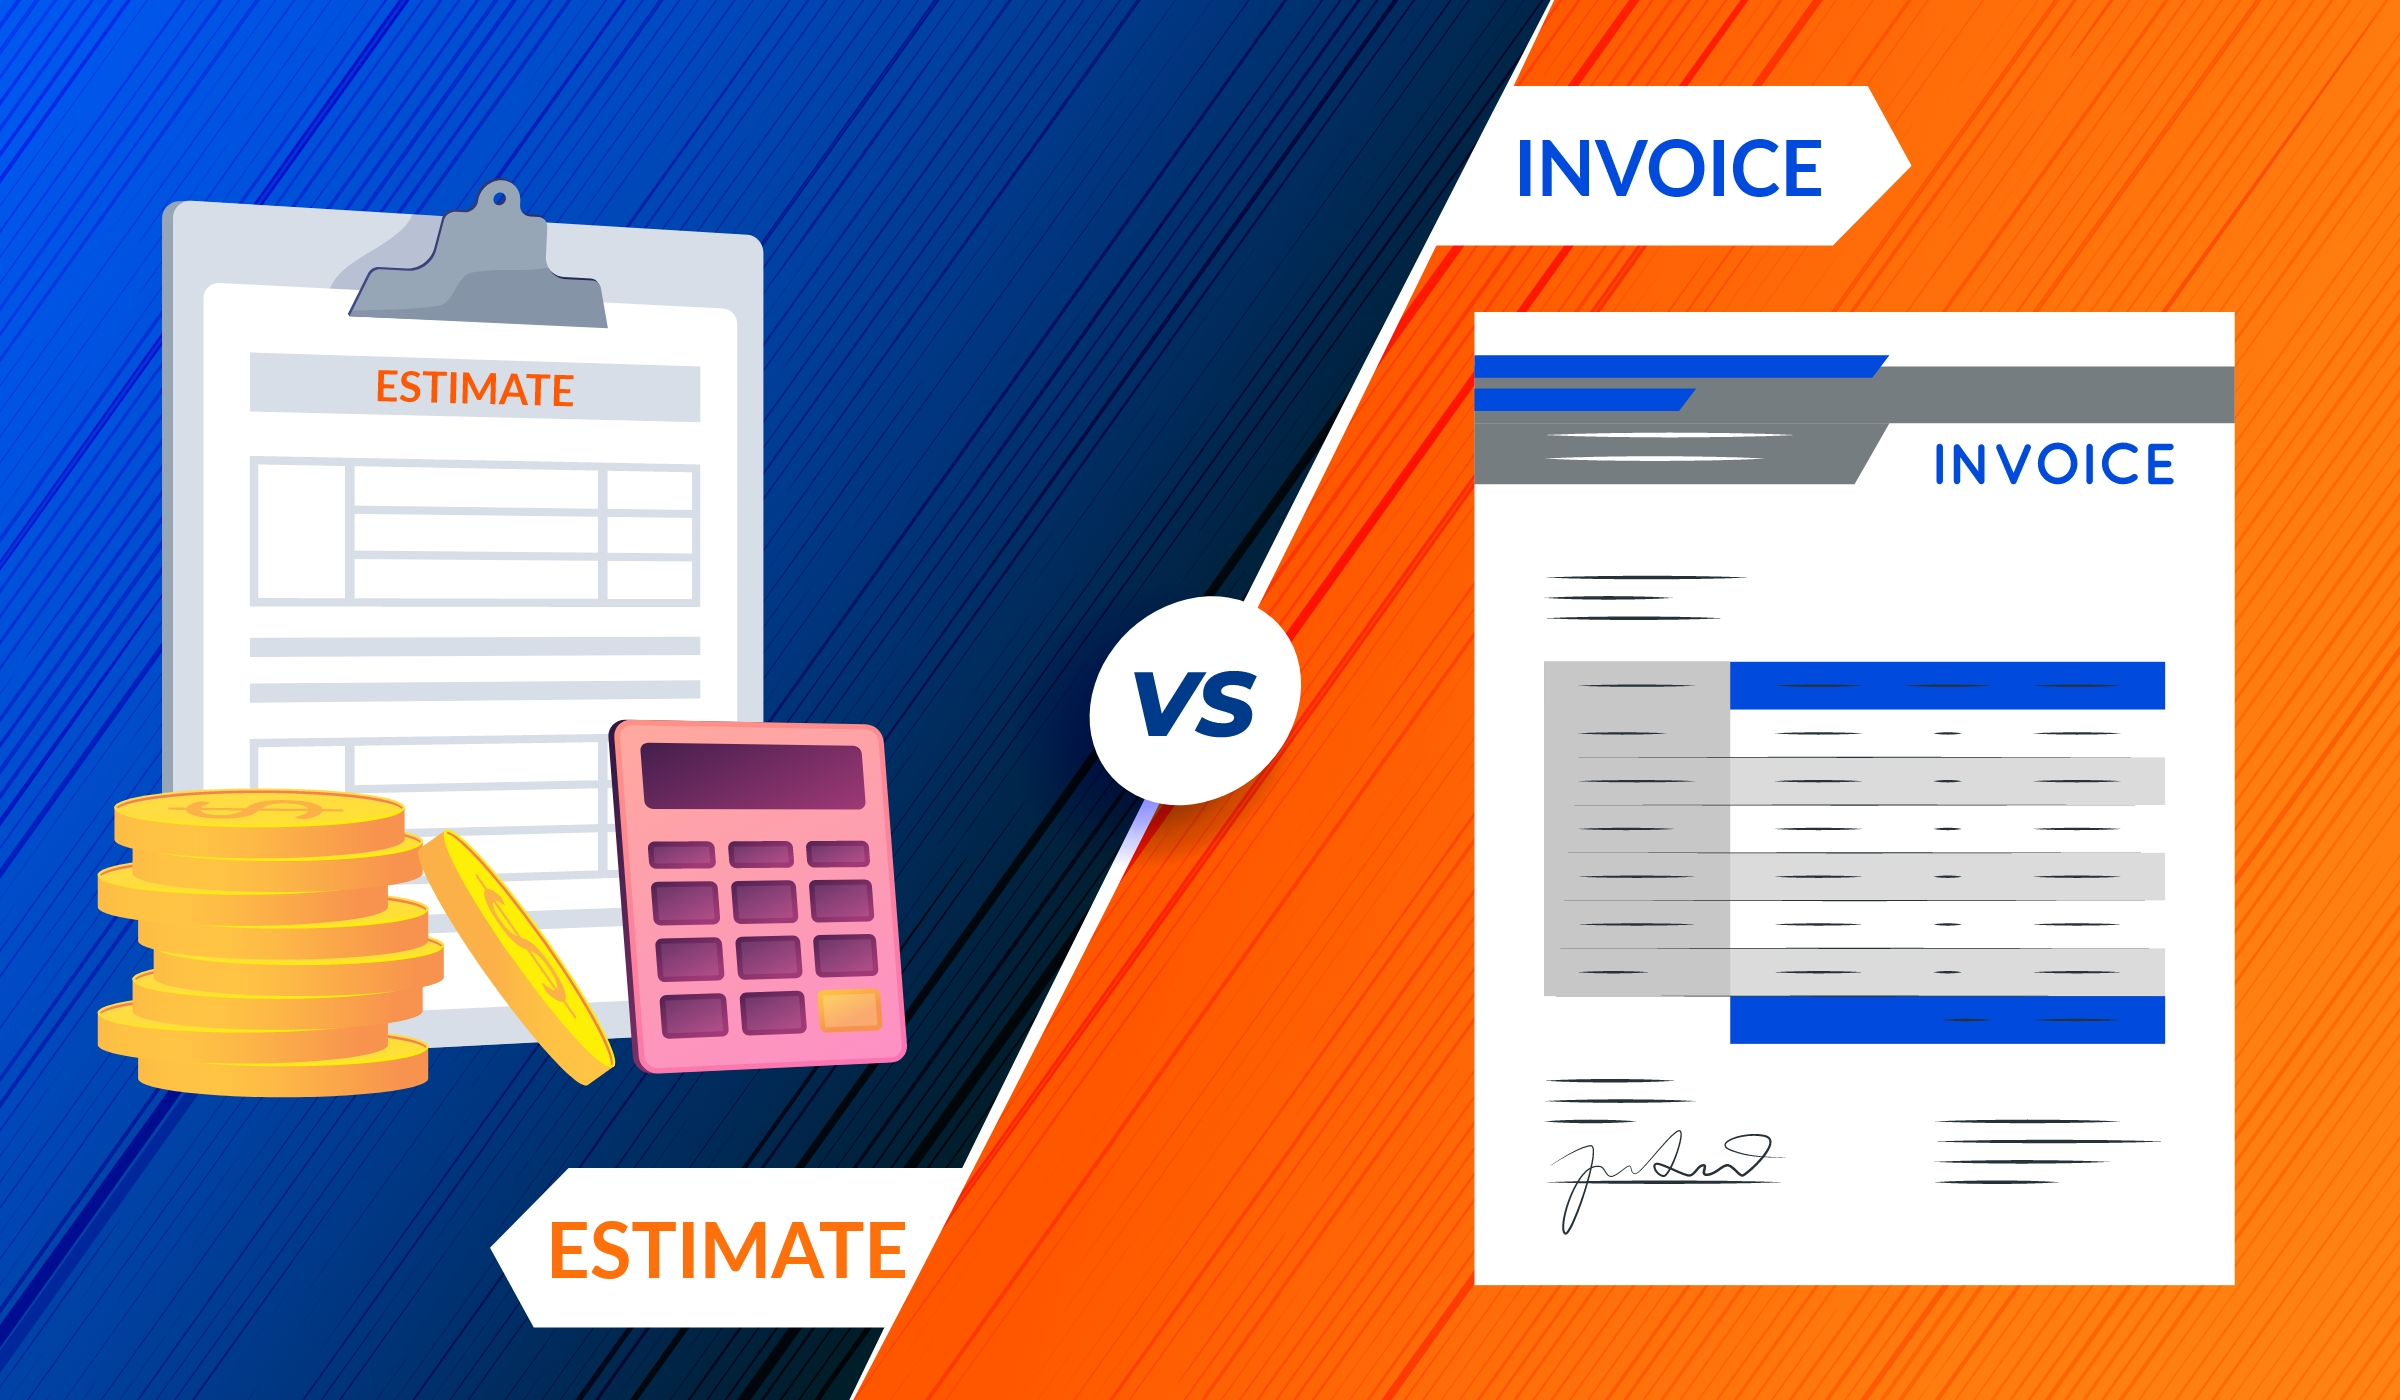 Invoice Vs. Estimate What's the Basic Difference